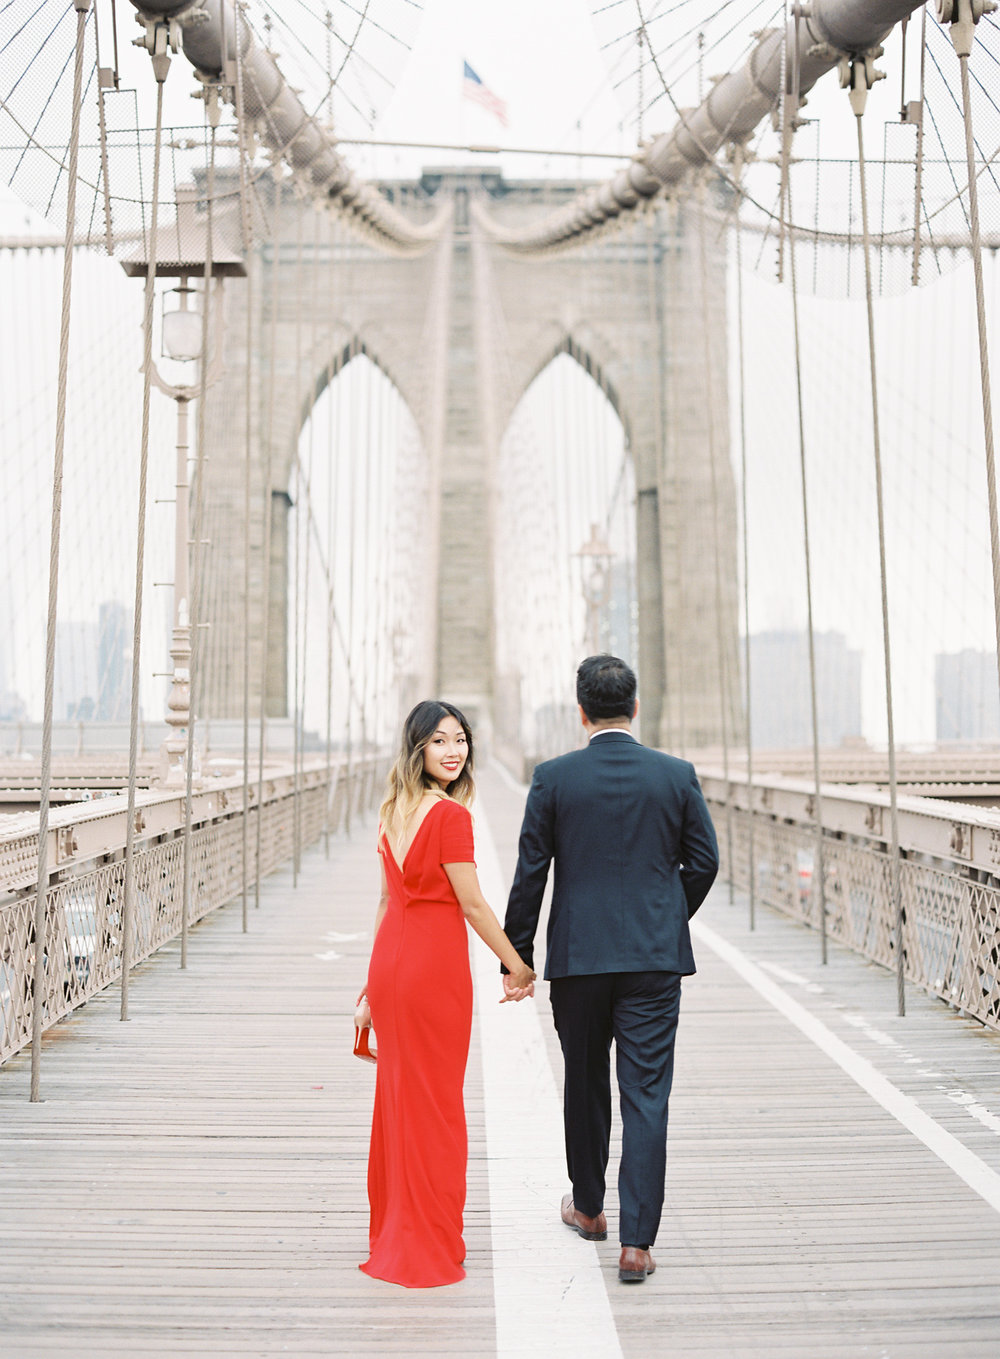 New-York-Film-Engagement-Session-Brooklyn-Bridge-Central-Park-4.jpg